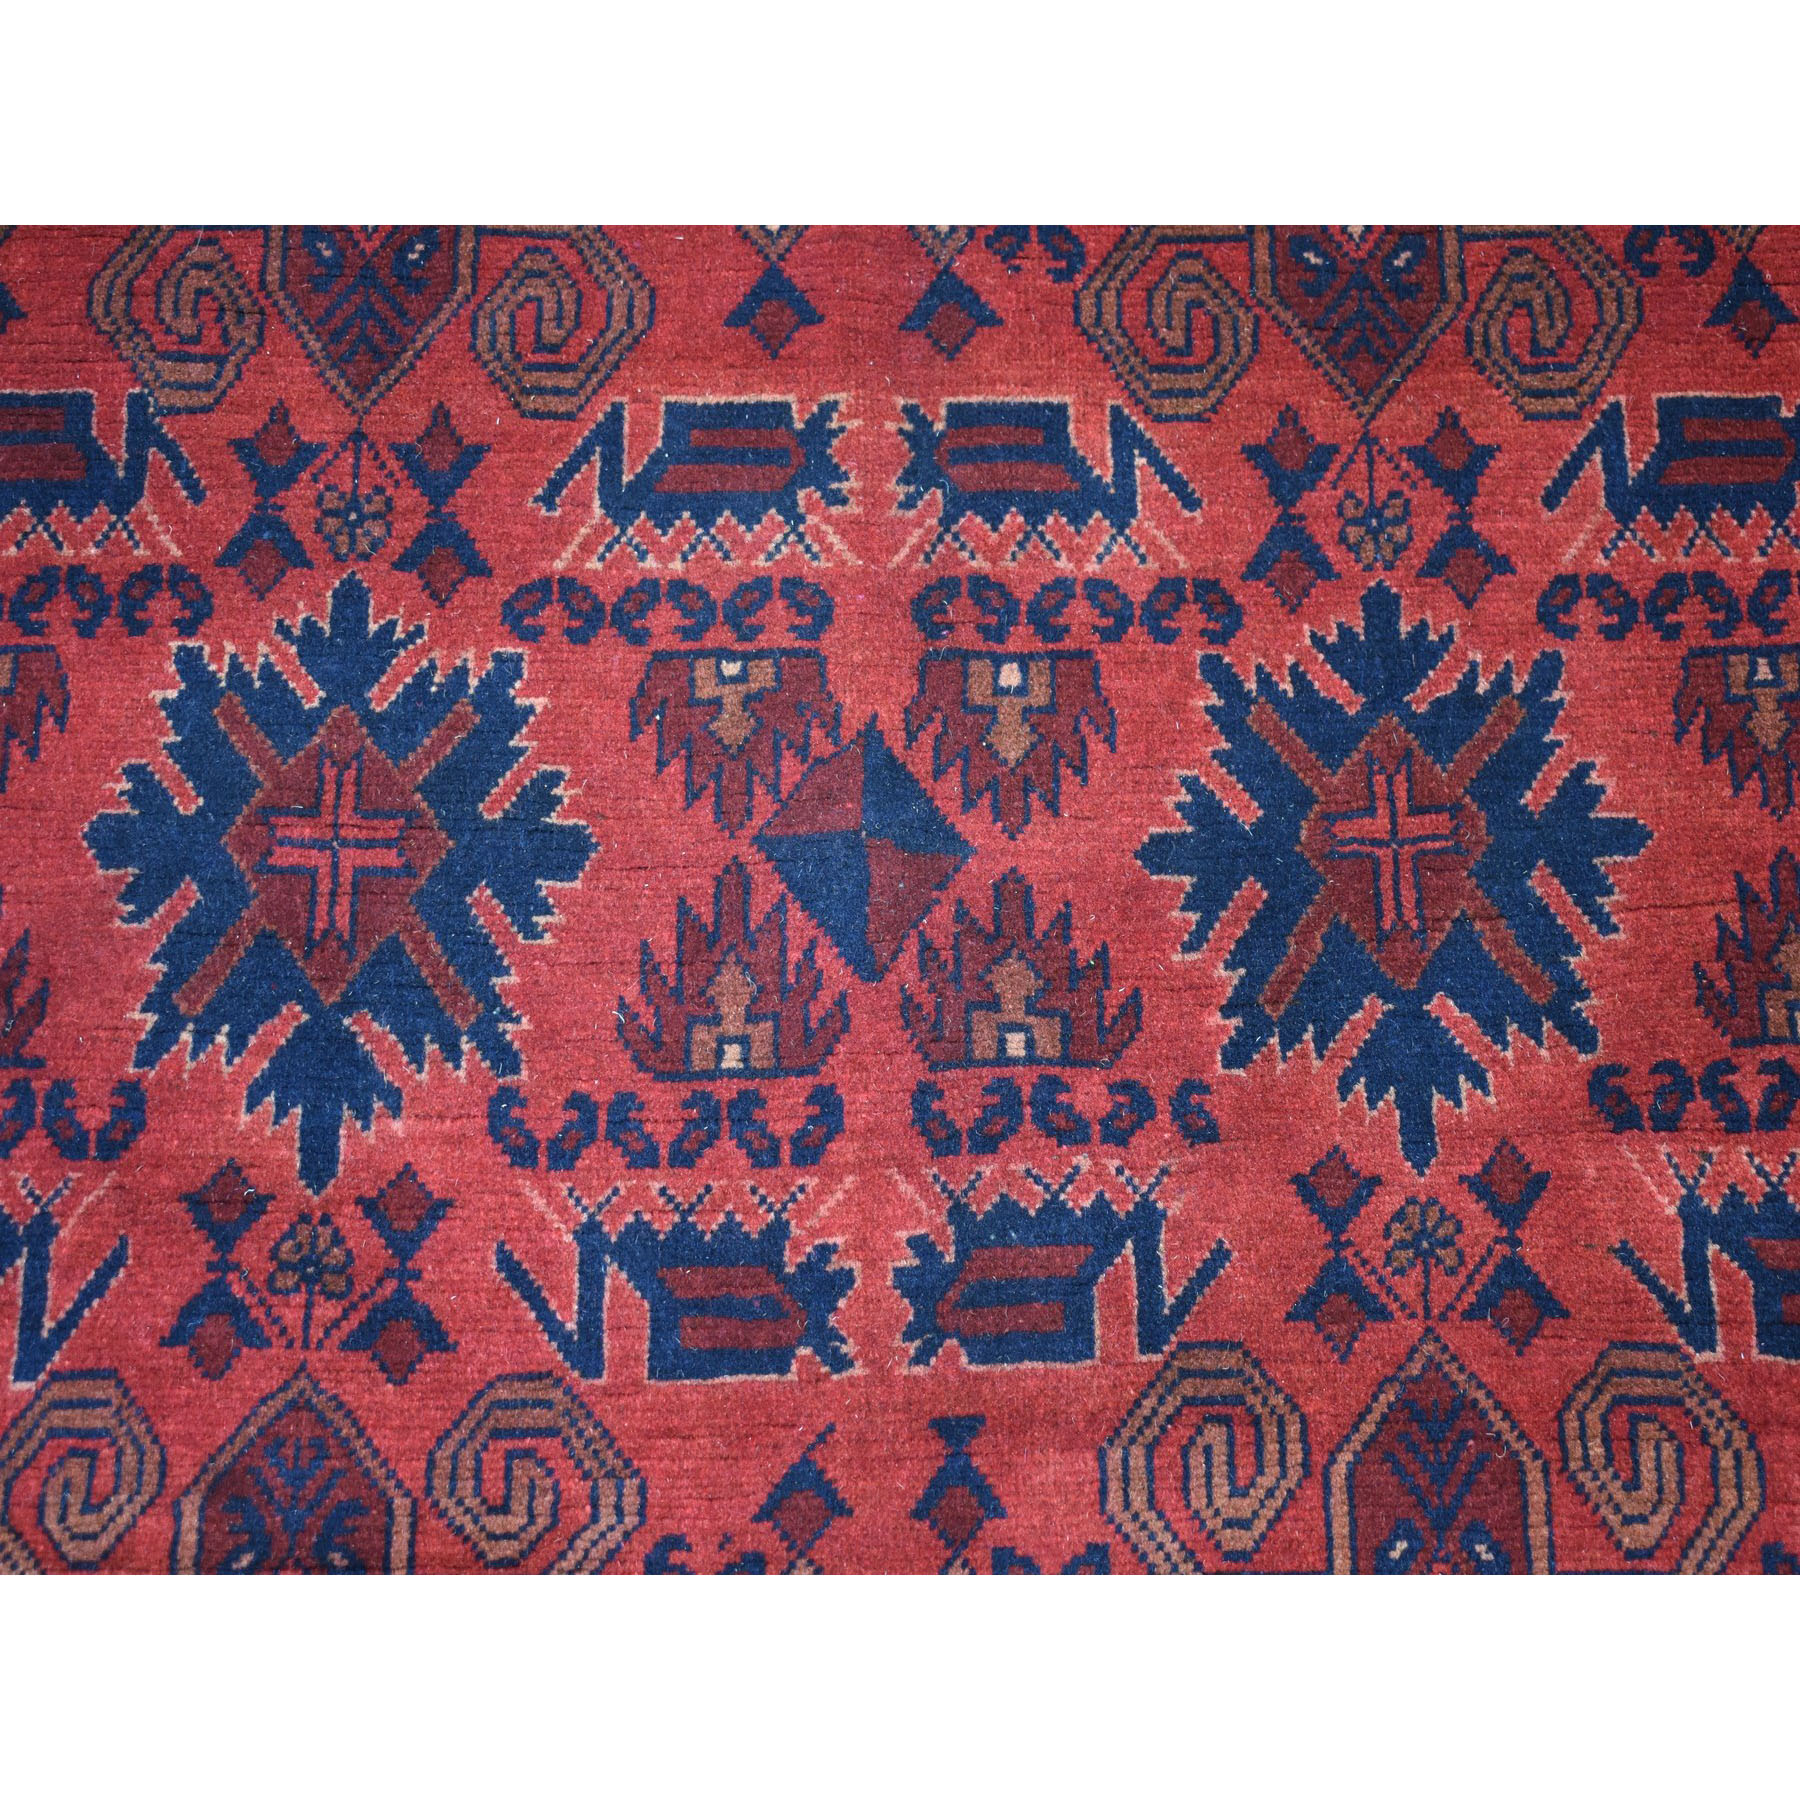 4-2 x6-7  Vintage Look Red Geometric Design Afghan Andkhoy Pure Wool Hand-Knotted Oriental Rug